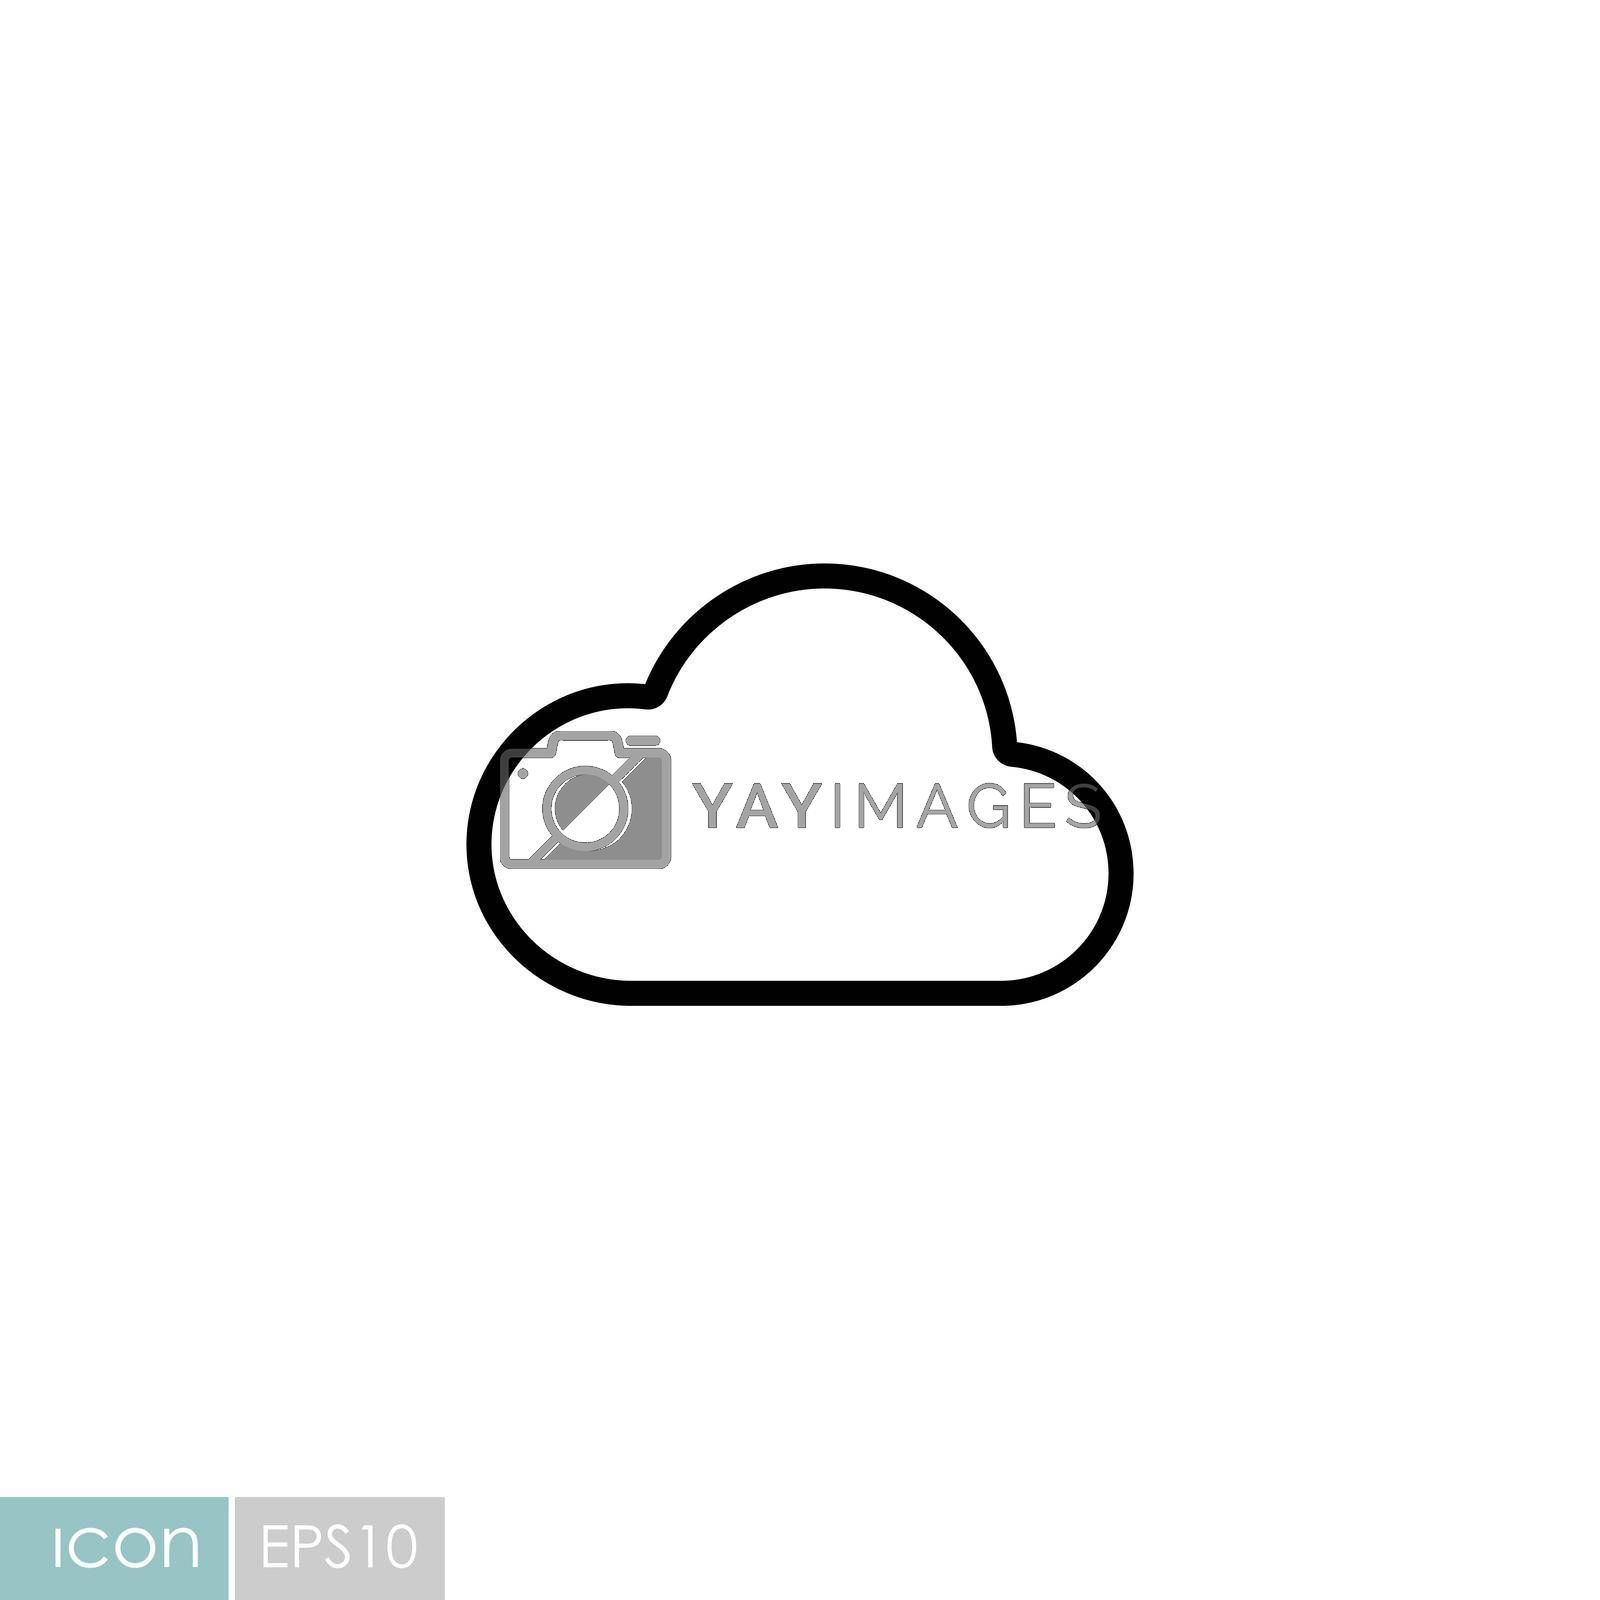 Cloud vector icon. Meteorology sign. Graph symbol for travel, tourism and weather web site and apps design, logo, app, UI